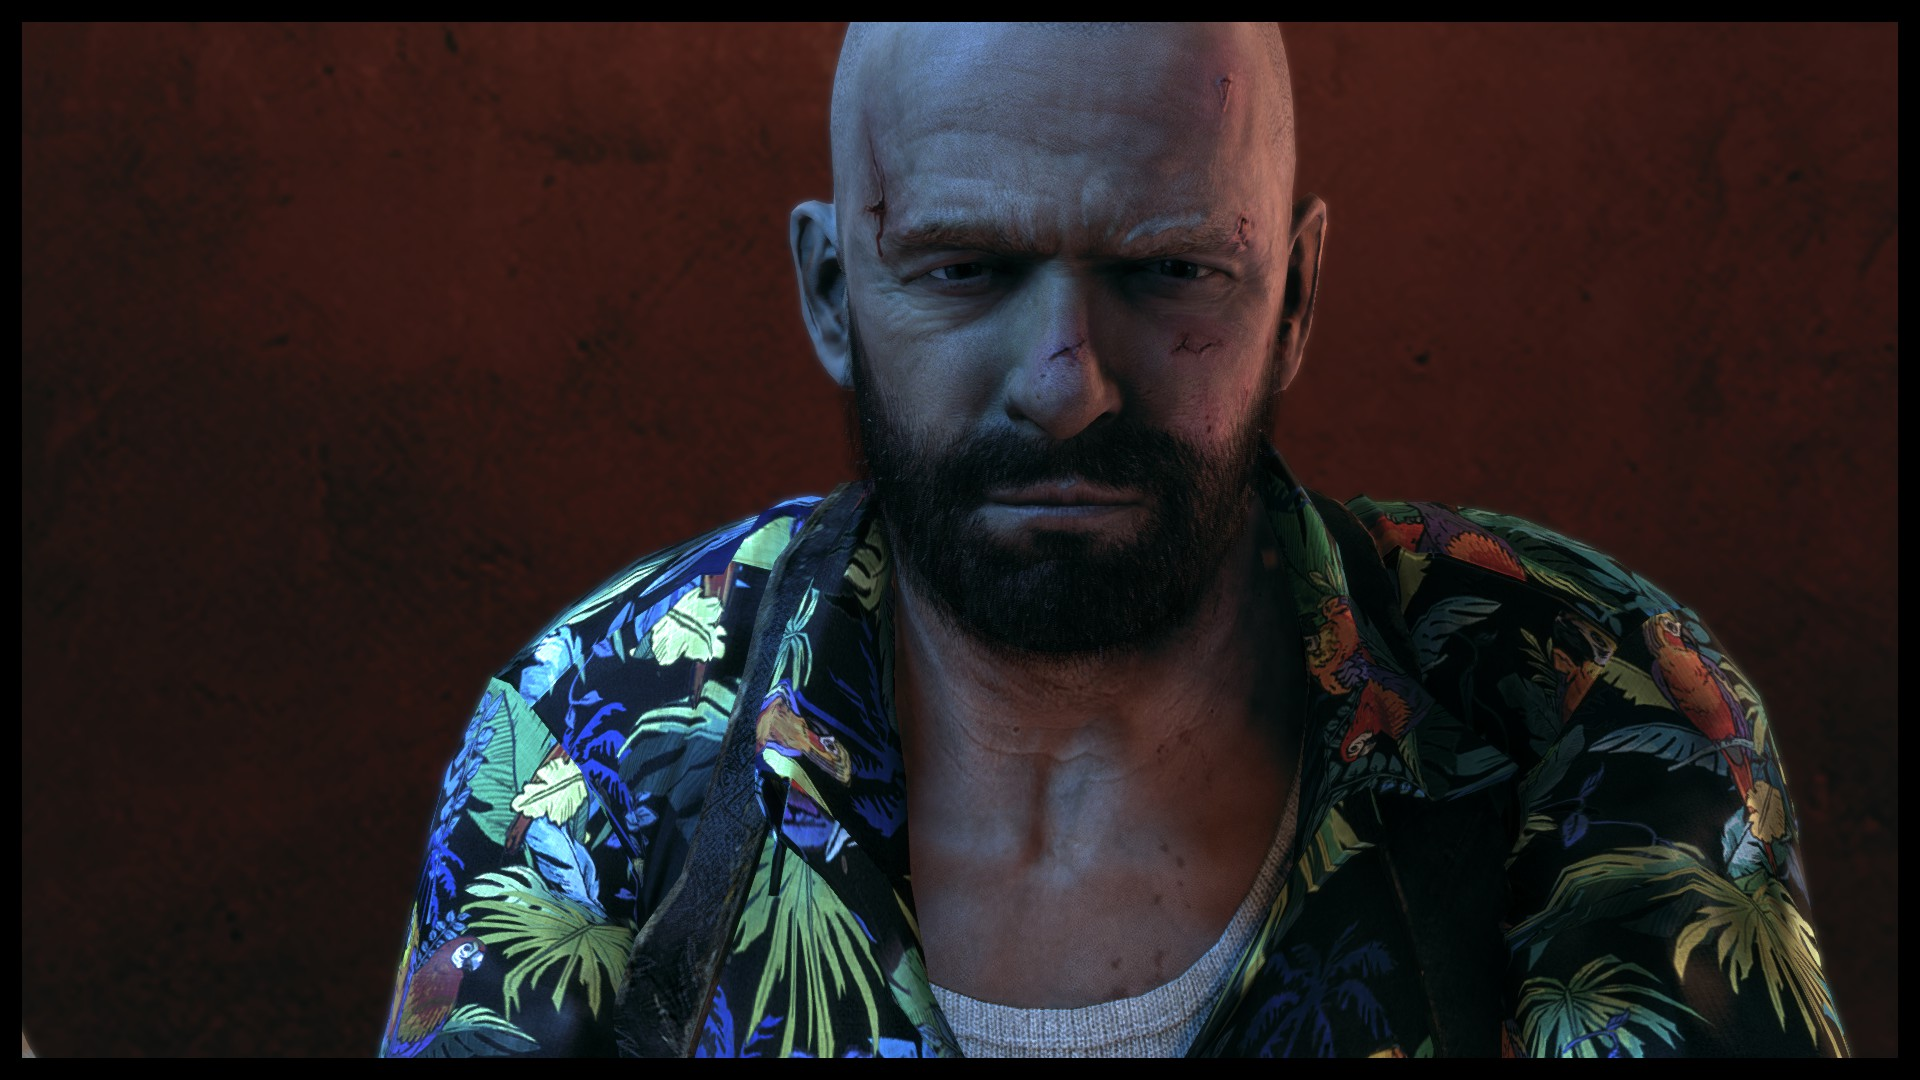 Max Payne 3 Bald Candyfree